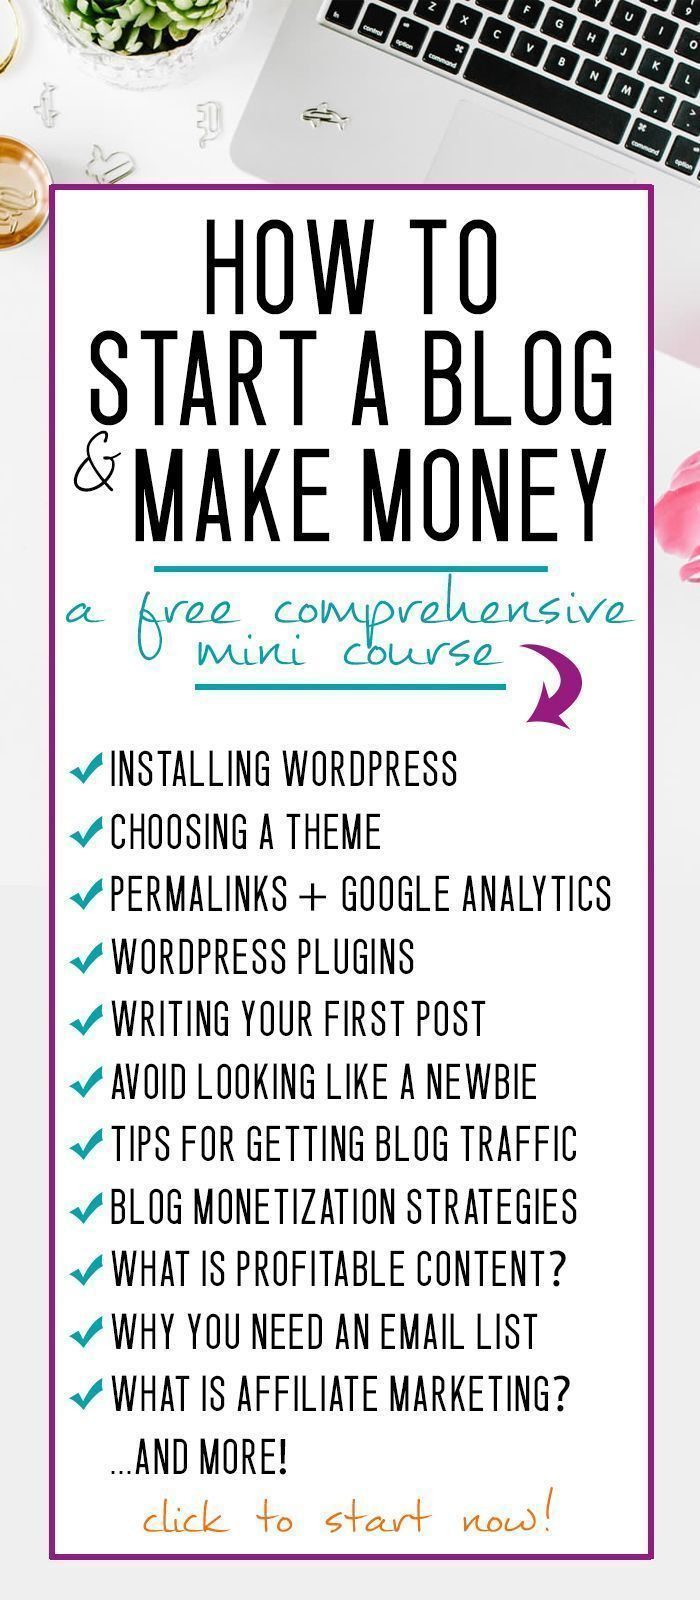 How to Start a Blog and Make Money in 2019 #machesselbst–diy